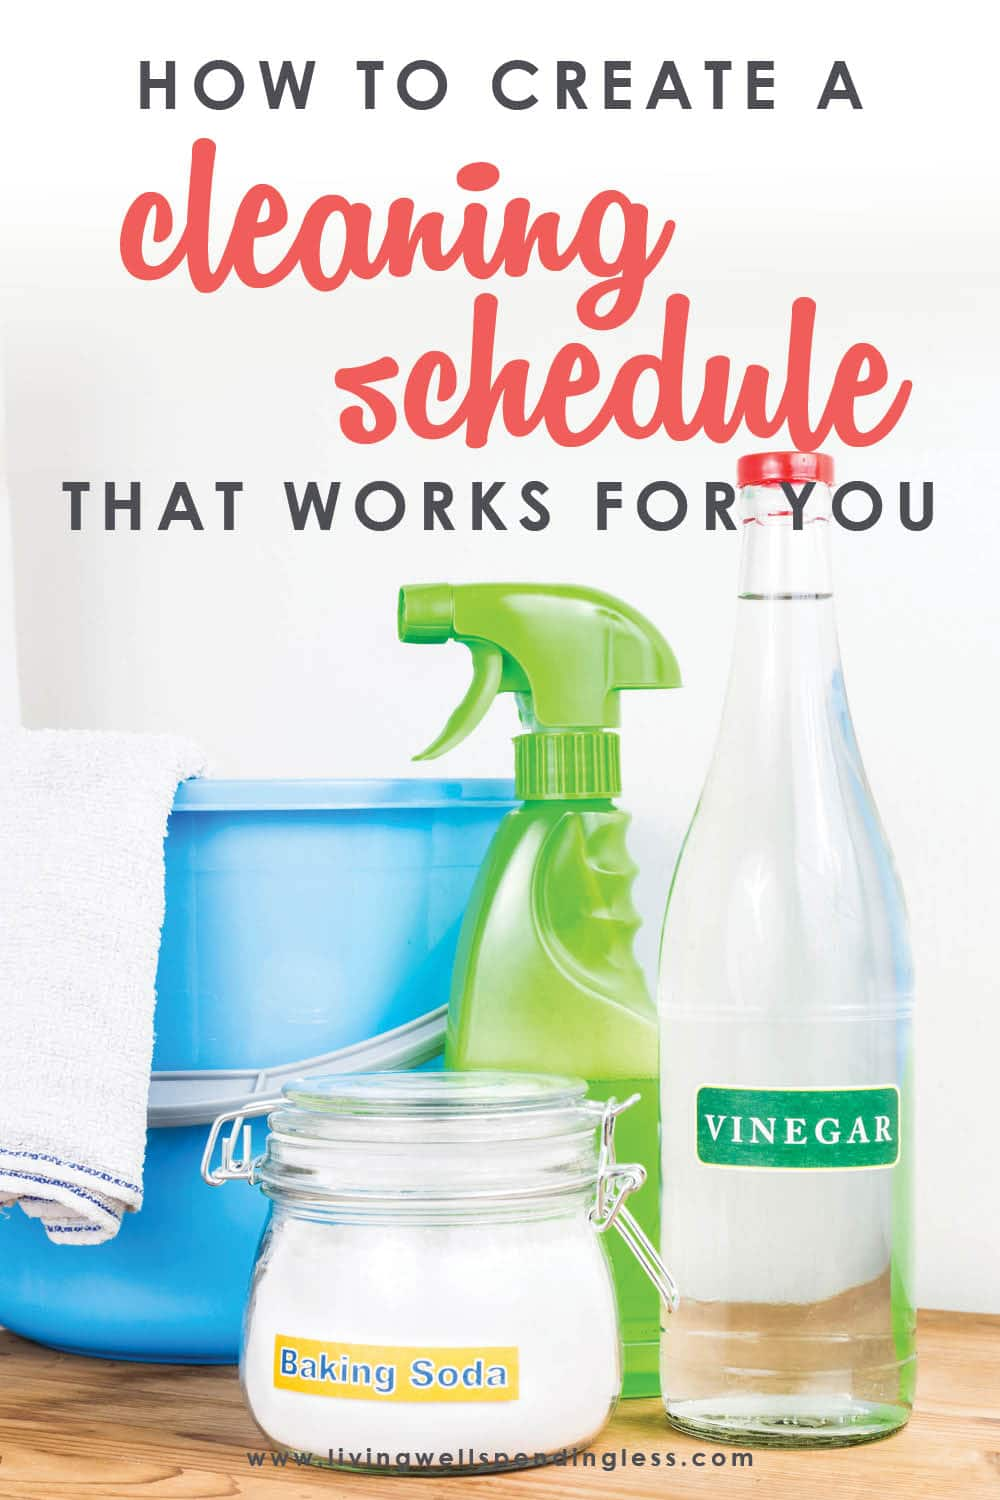 Want a clean house but have no idea where to begin? Believe it or not, a cleaning schedule can actually make keeping your house clean a whole lot easier! In just 3 easy steps, this super practical post will show you exactly how to create a personalized cleaning plan that will work for your own home. FREE DOWNLOADS included making it that much easier for you!